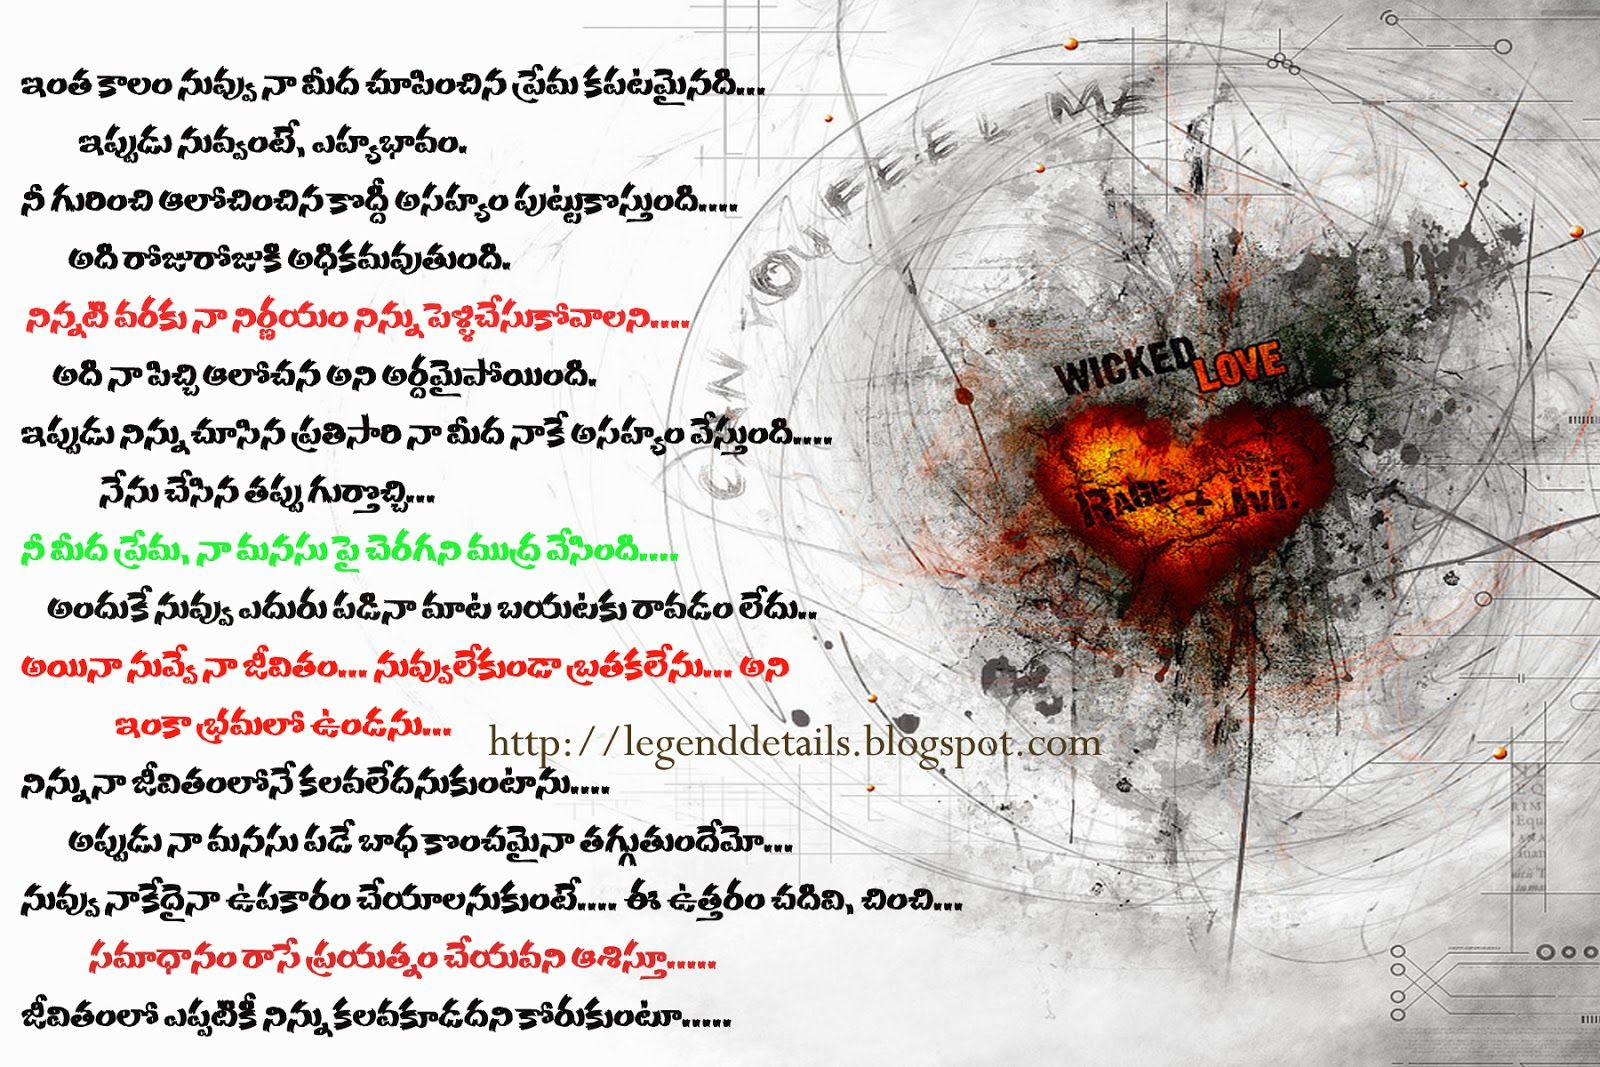 The legendary love telugu great love letters telugu love quotes the legendary love telugu great love letters telugu love quotes telugu love sms mitanshu Images